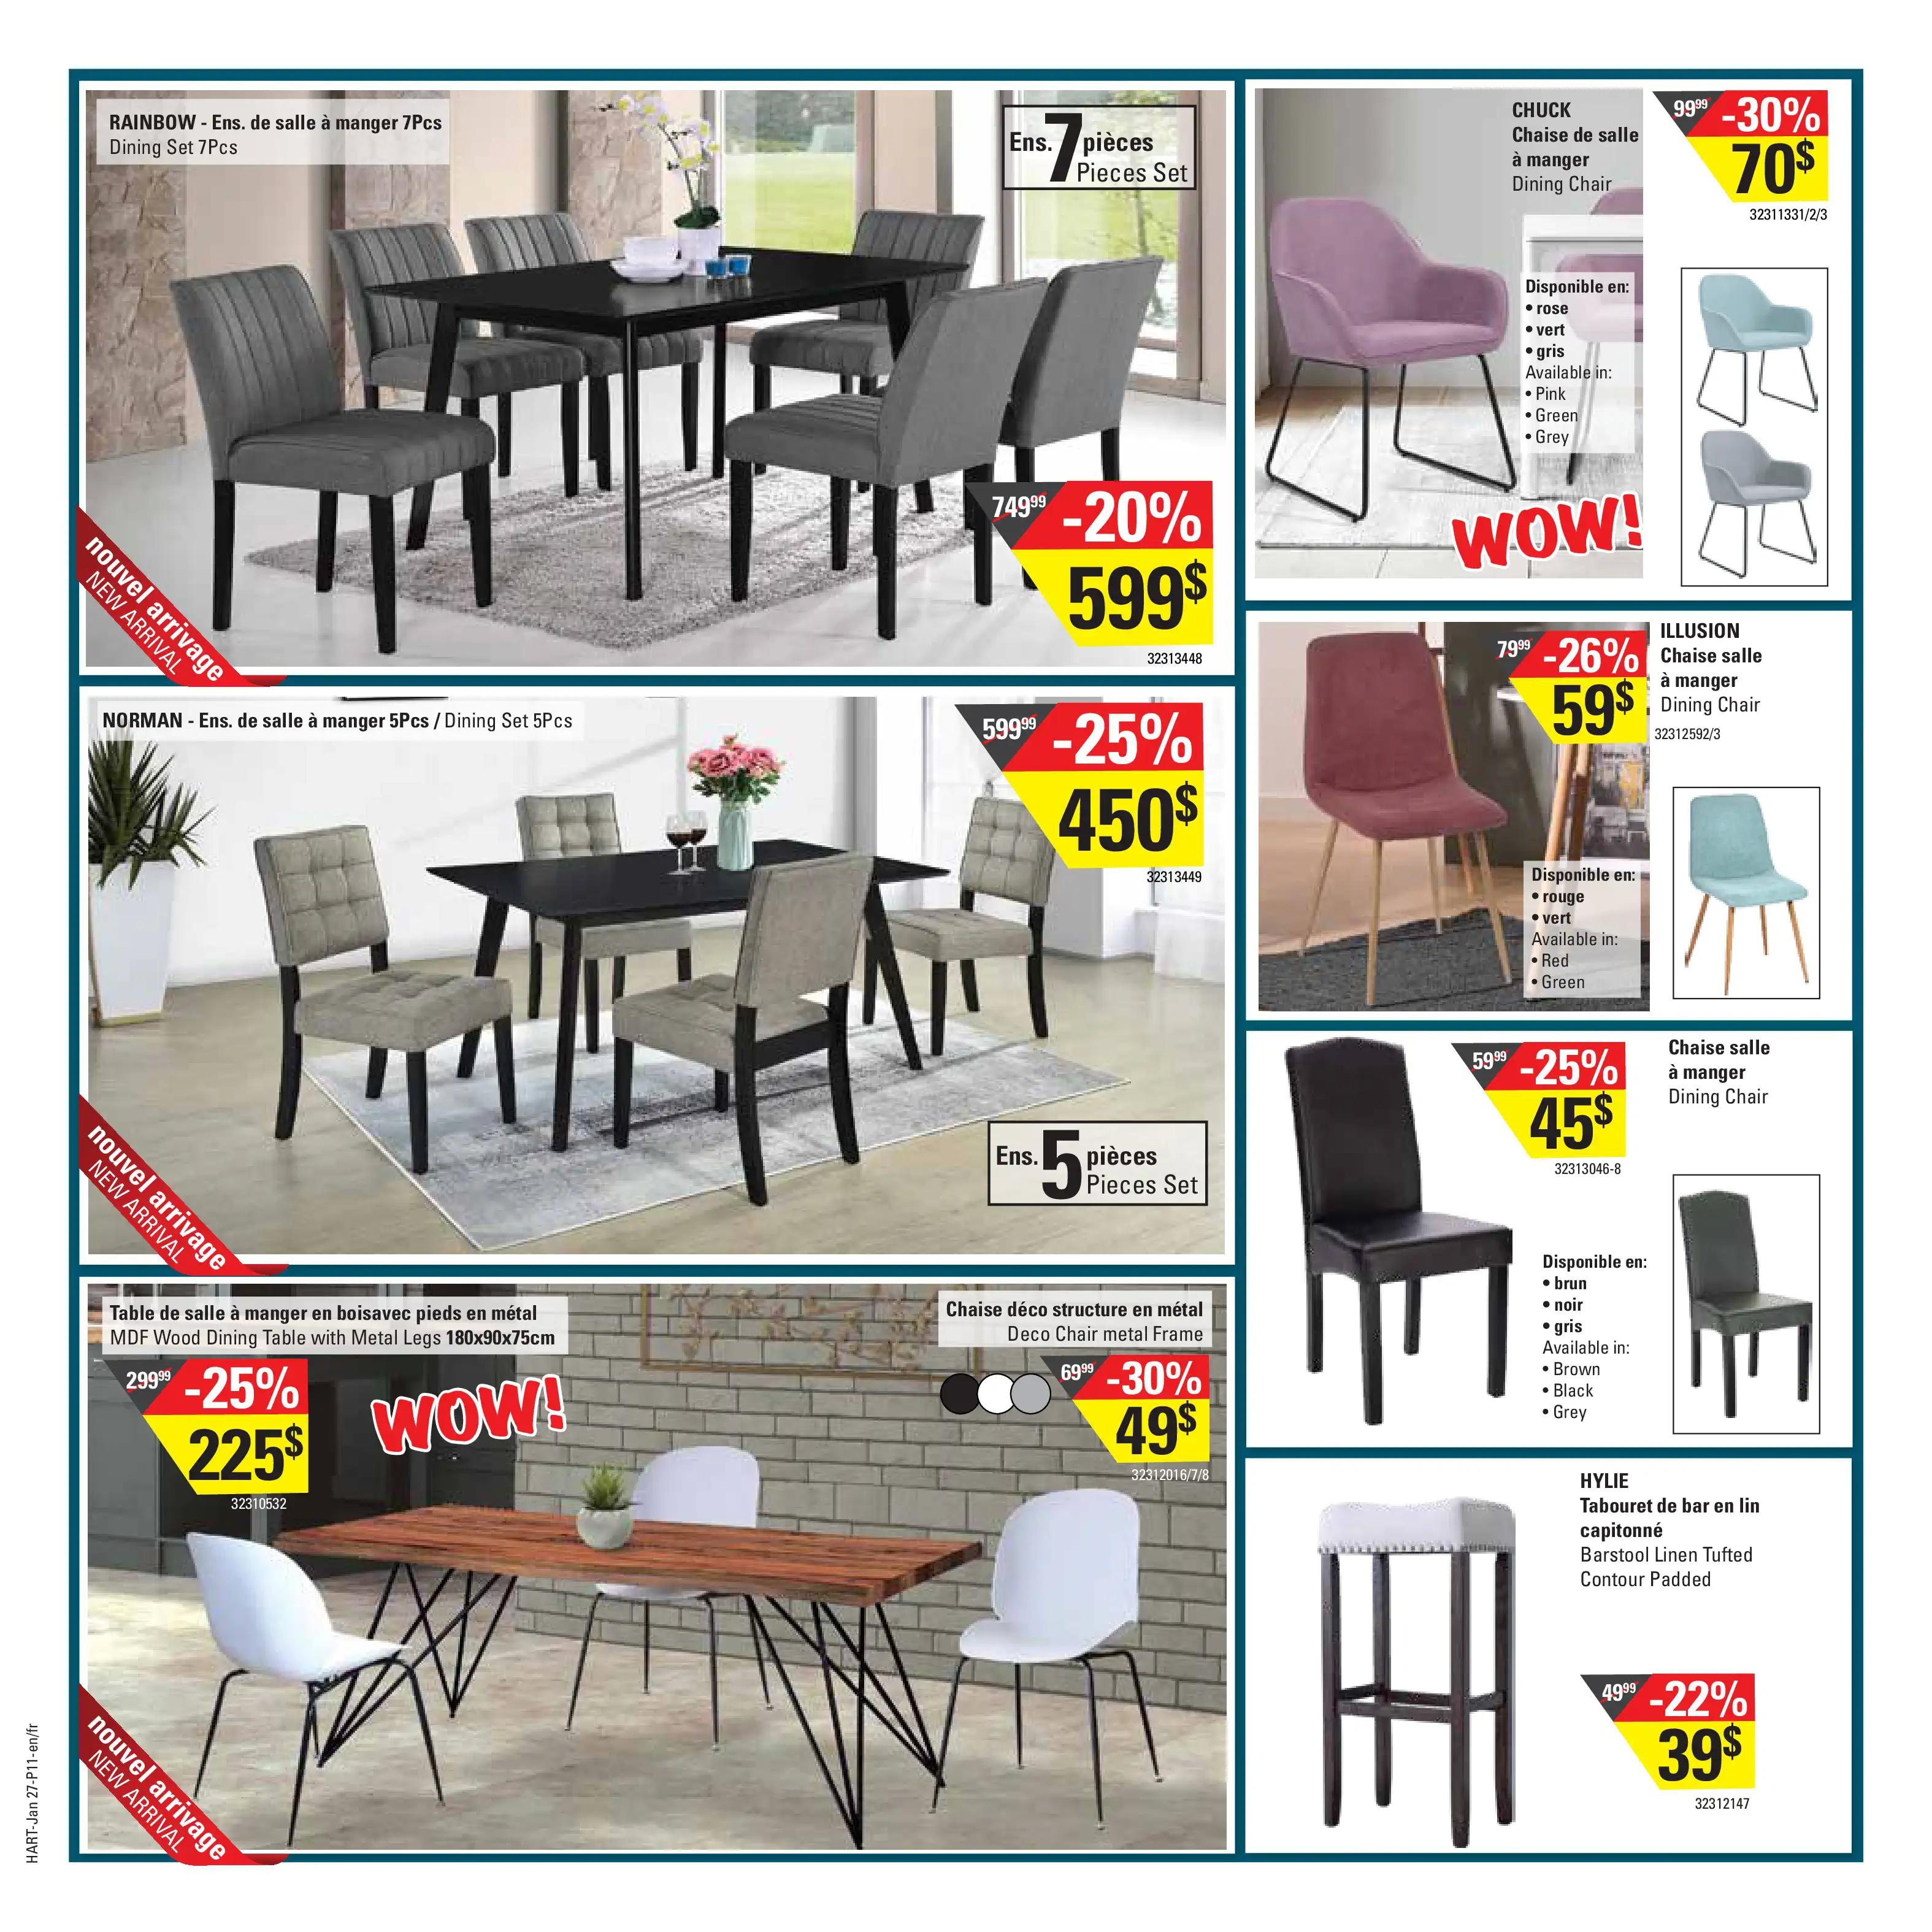 Hart - Weekly Flyer Specials - Page 11